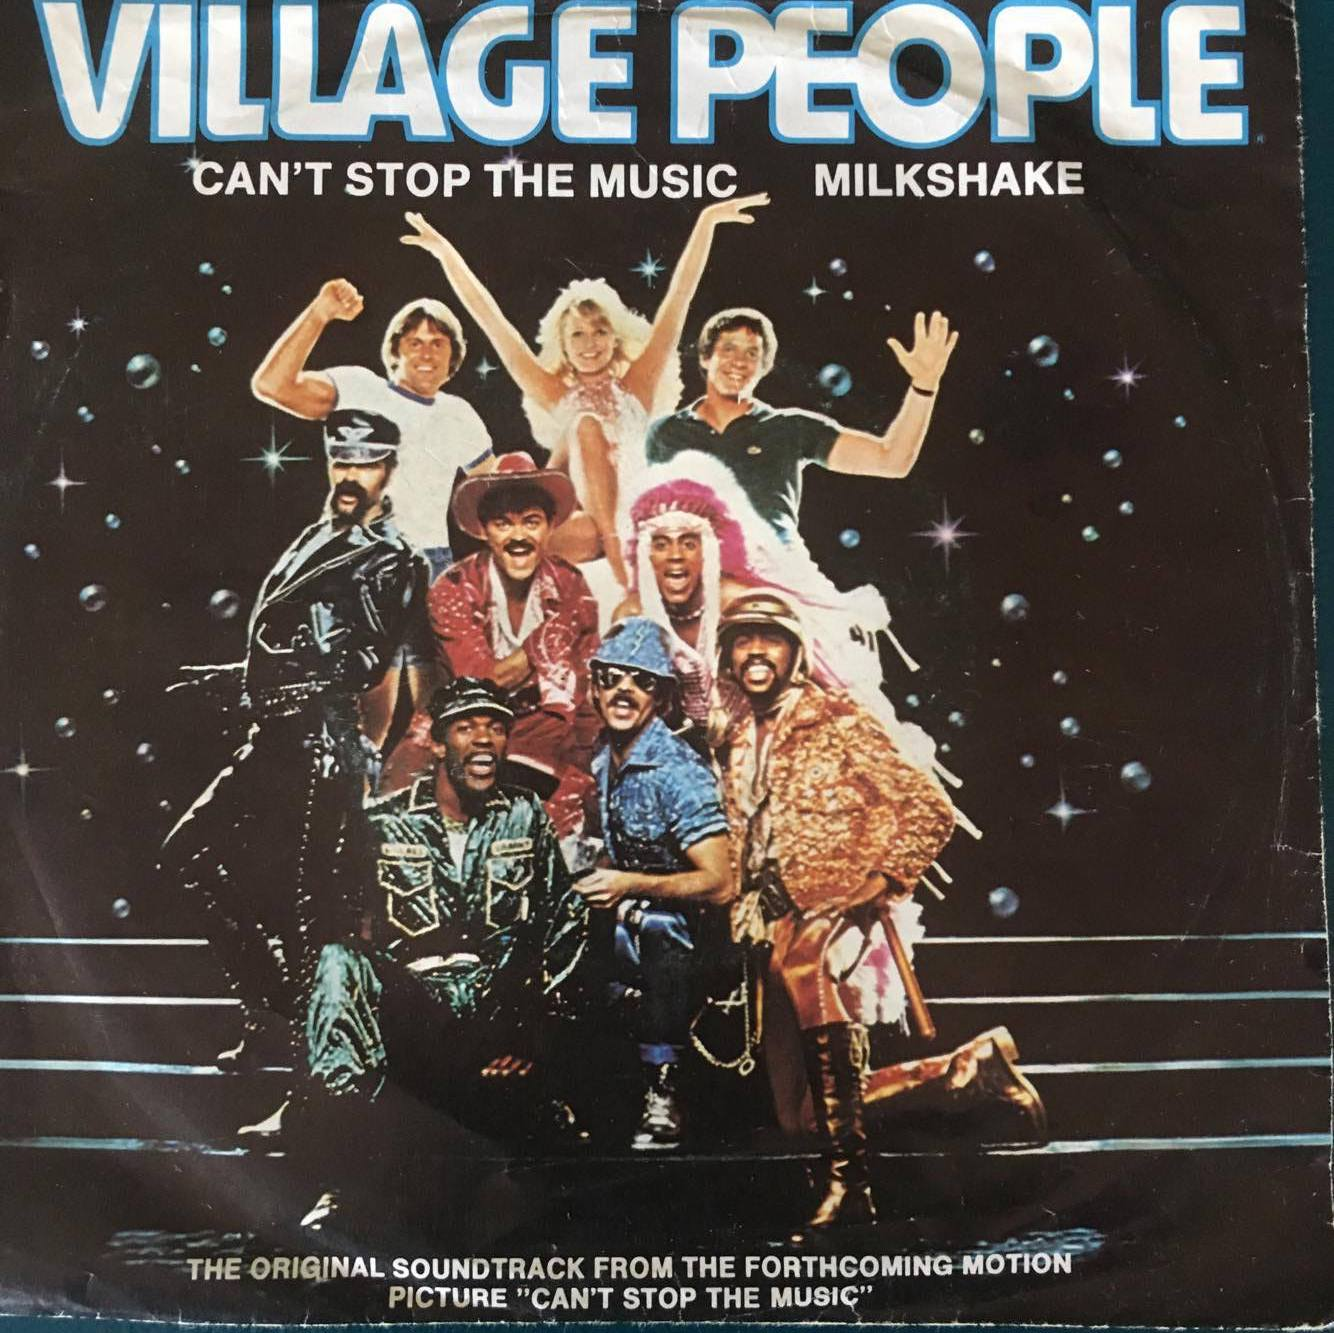 jaquettes4/Village-People_Can-t-Stop-The-Music.jpg